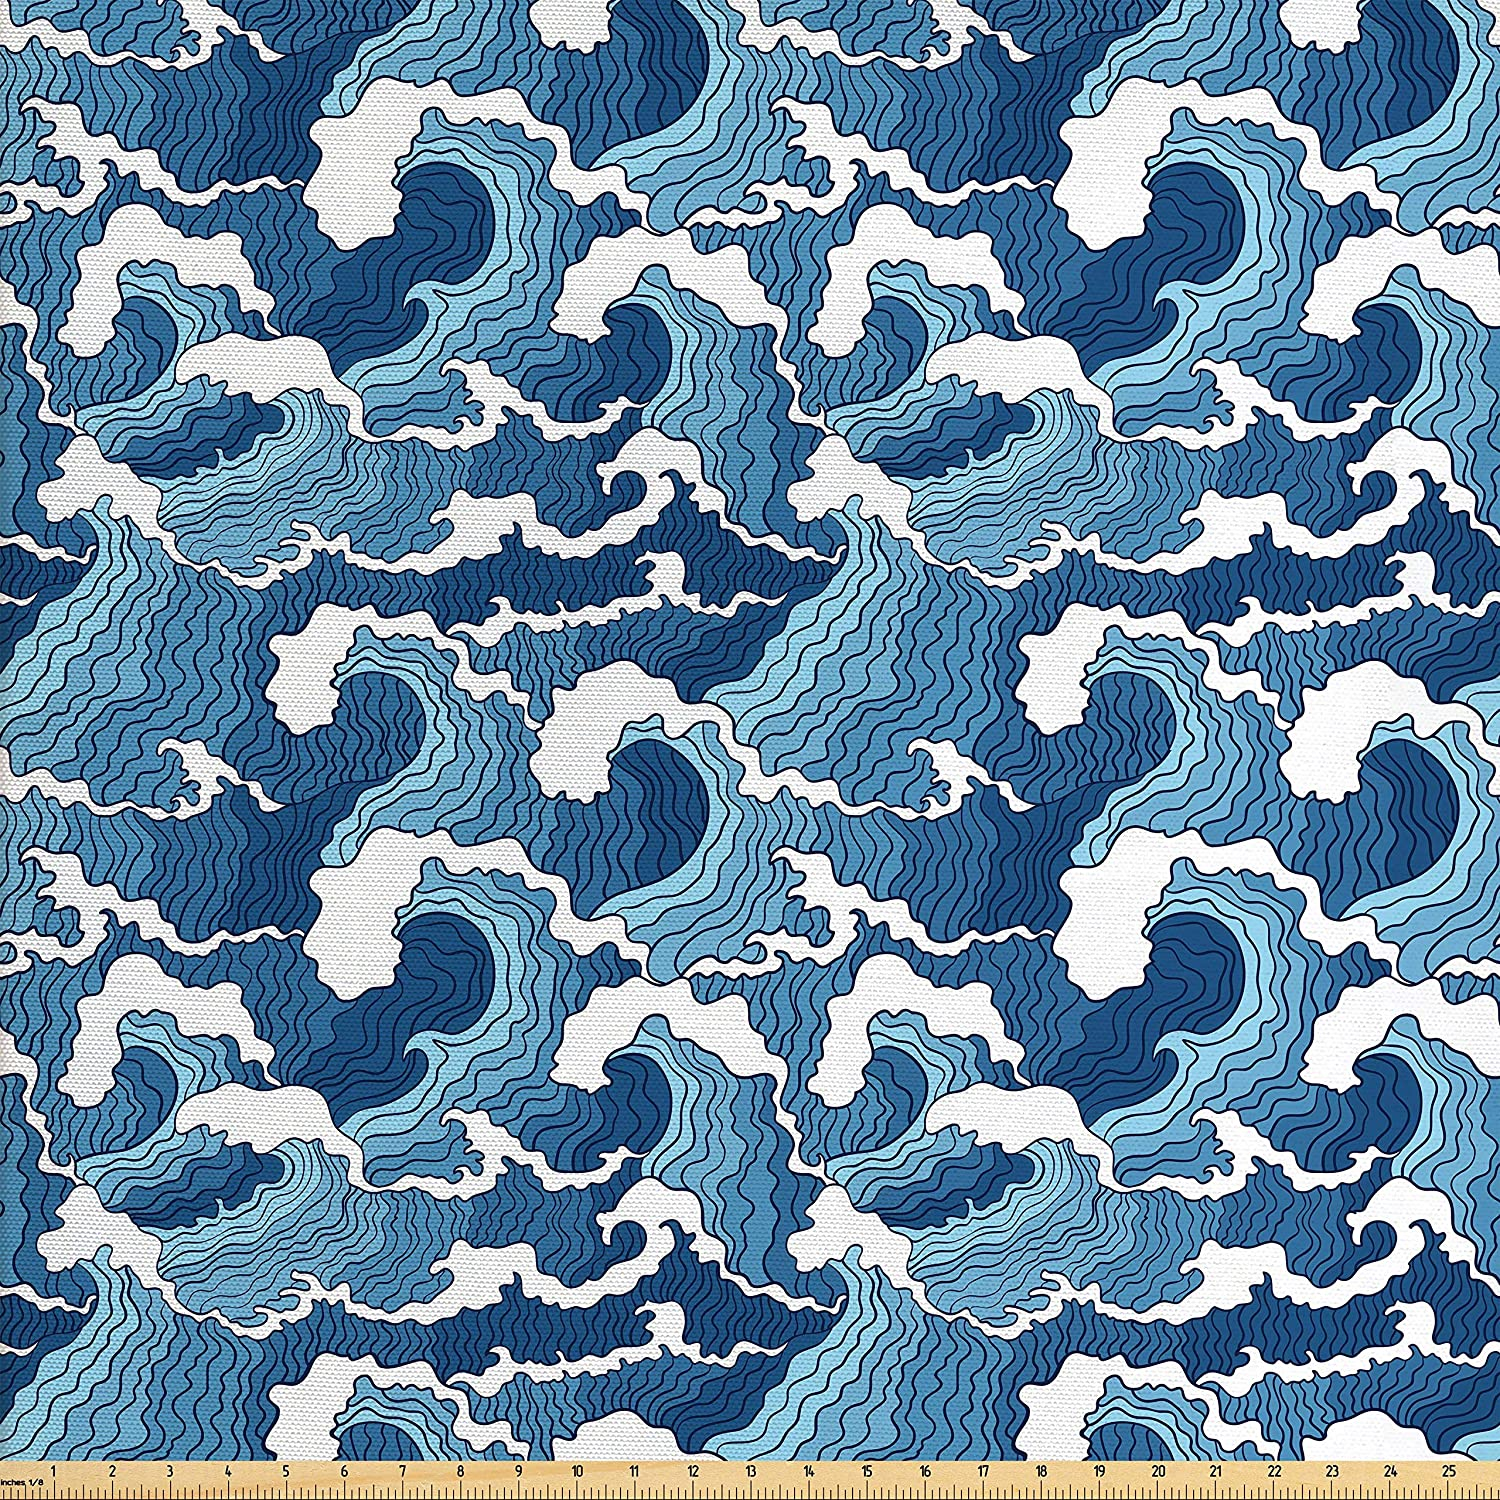 Lunarable Japanese Wave Fabric by The Yard, Stormy Sea with Abstract Chinese Folk Art Influences, Decorative Fabric for Upholstery and Home Accents, 1 Yard, Pale Blue